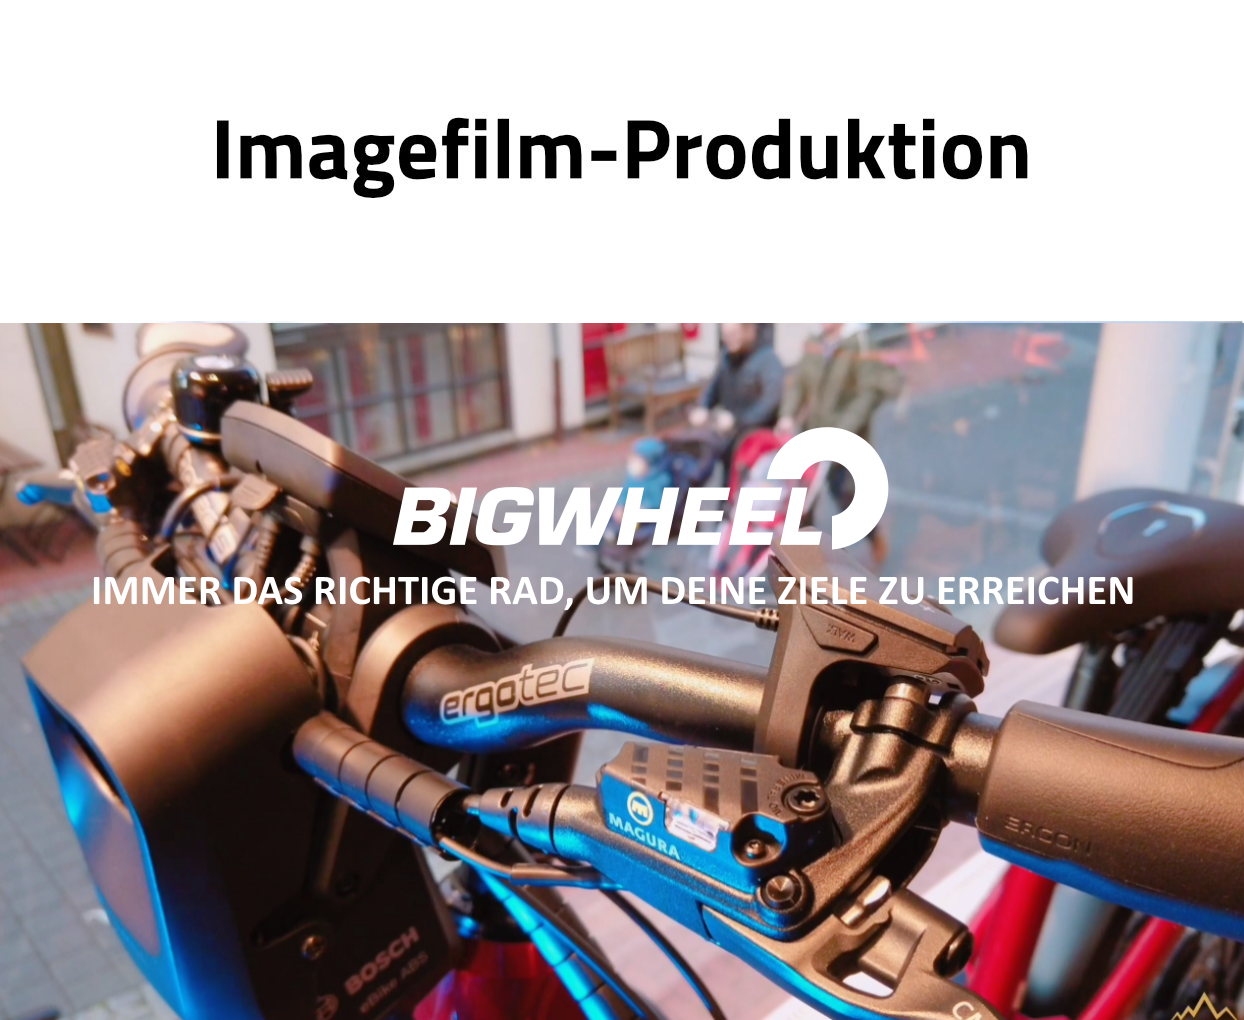 Standortfilm AufgeLaden by Big Wheel